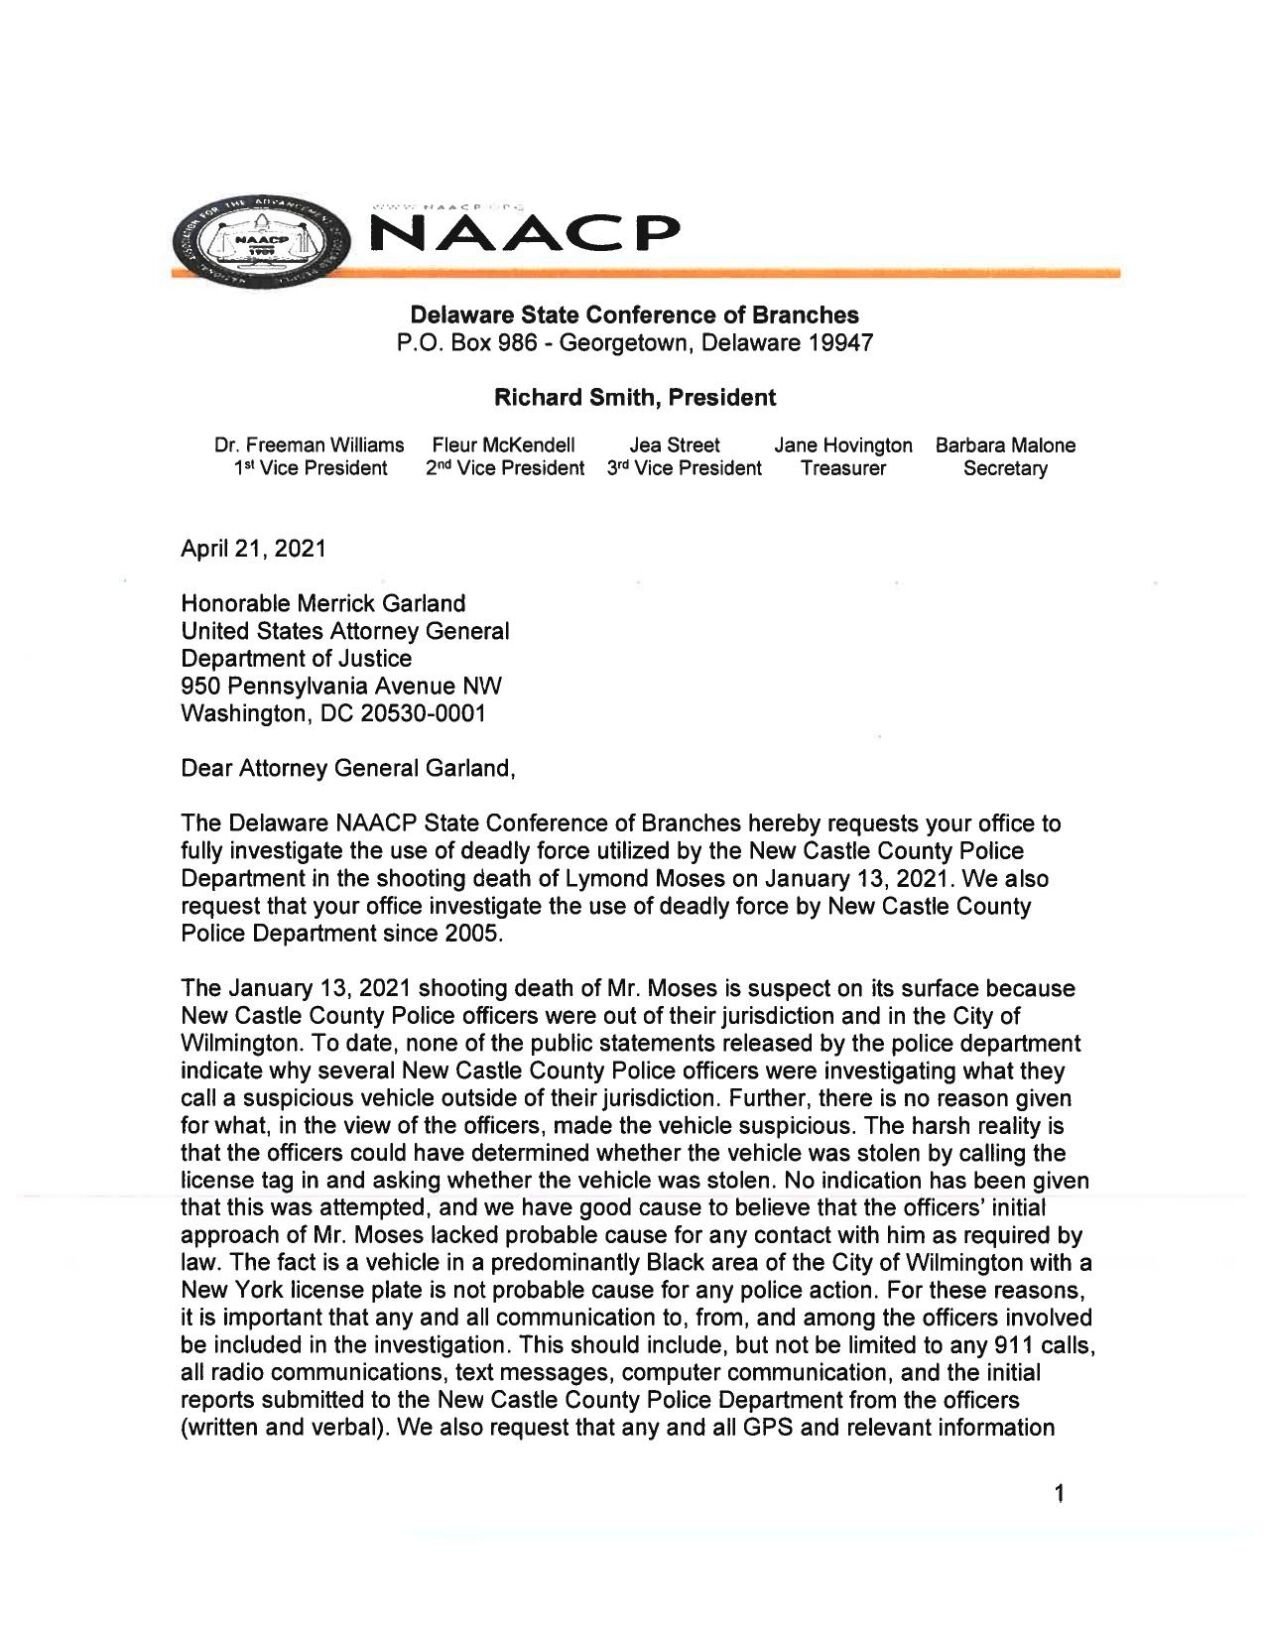 Delaware NAACP Letter to U.S. Attorney General Merrick Garland